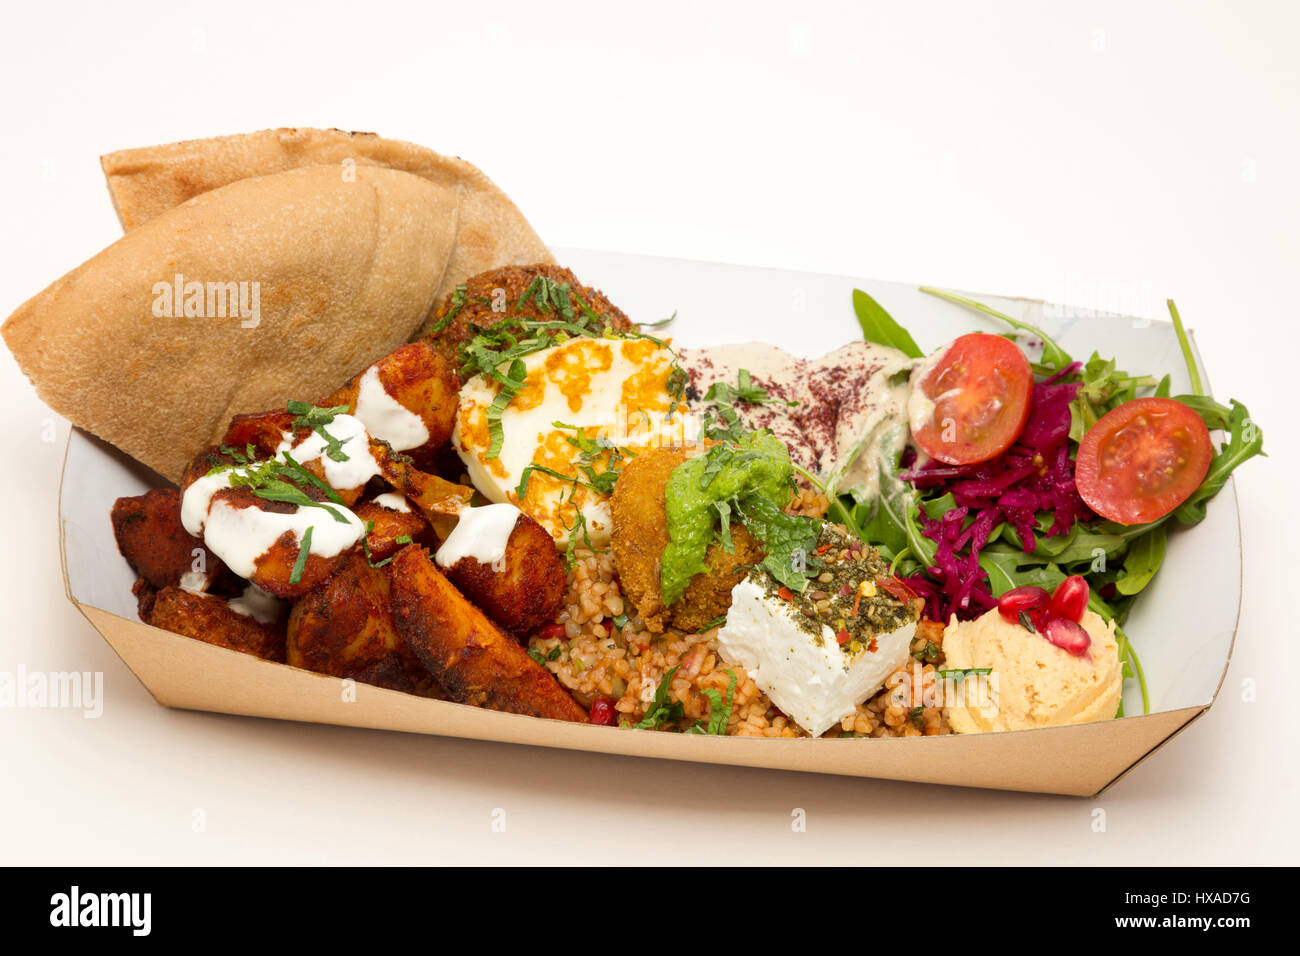 Food - Middle east food, Vegetarian food selection variety of Mezze all available as takeaway food, UK - Stock Image